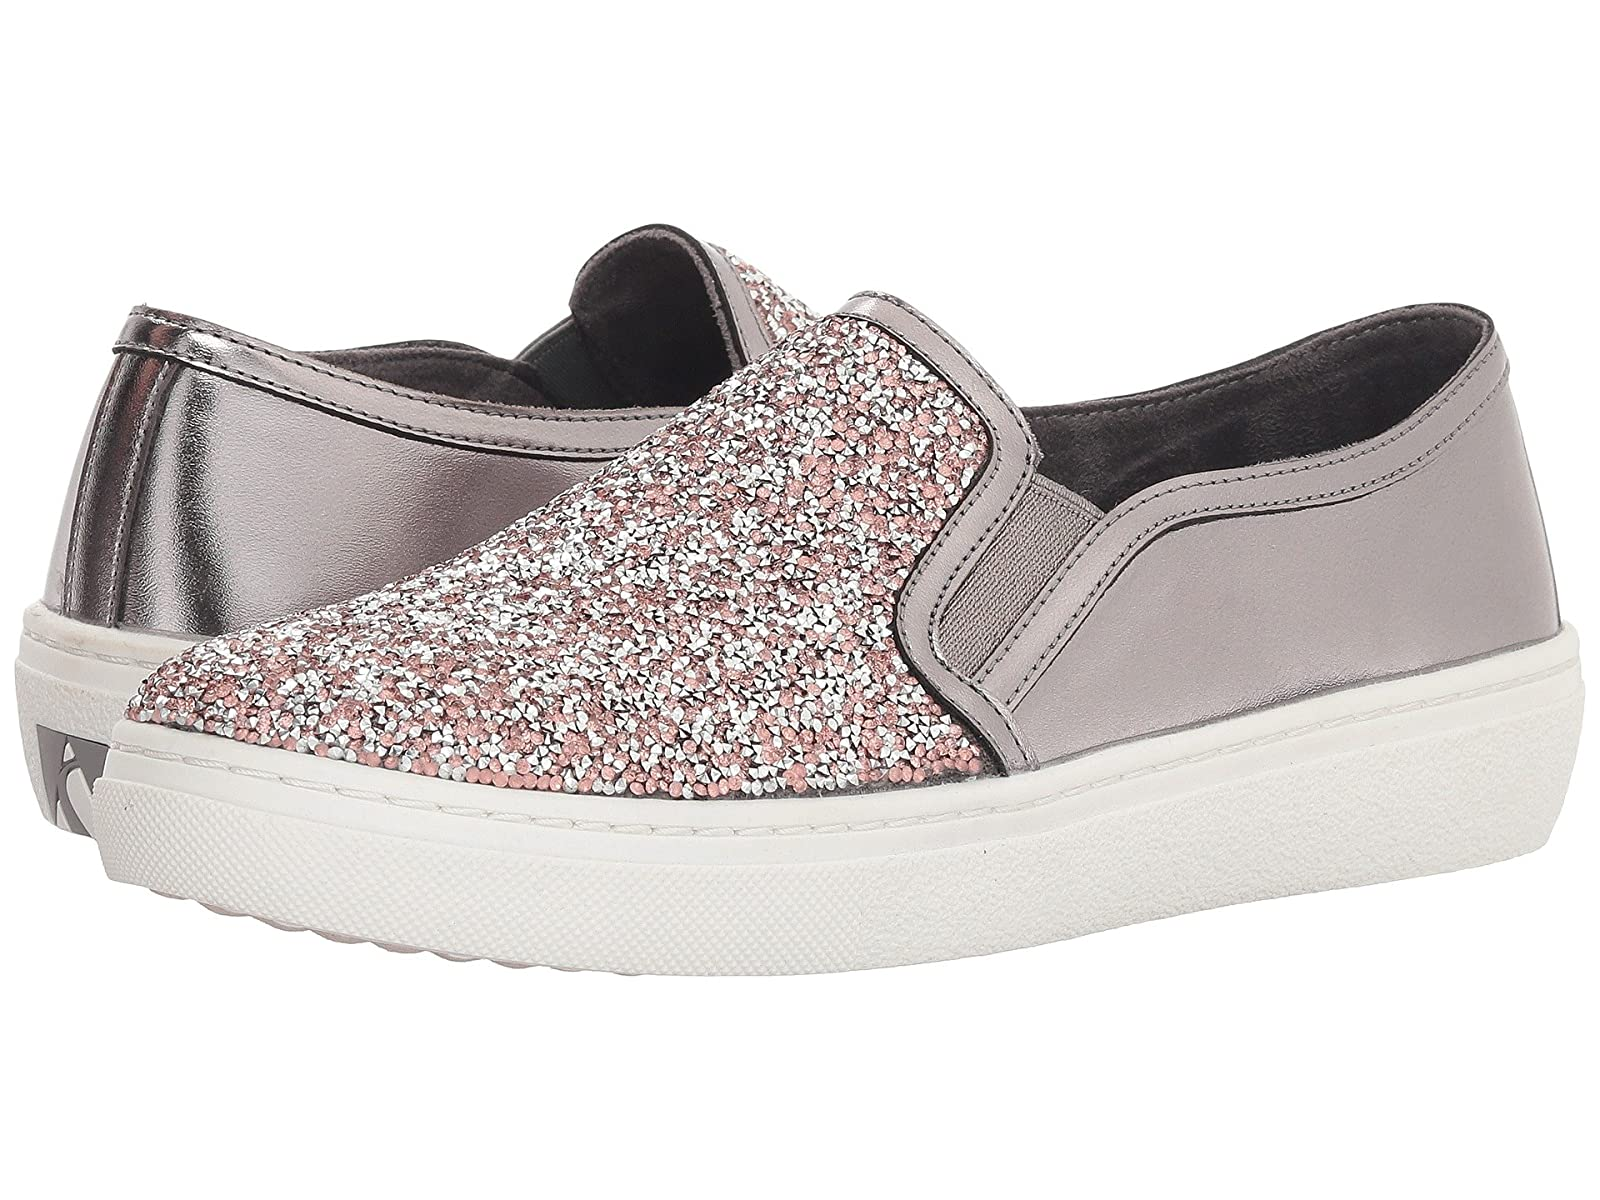 SKECHERS Goldie - Treasure ChestAtmospheric grades have affordable shoes